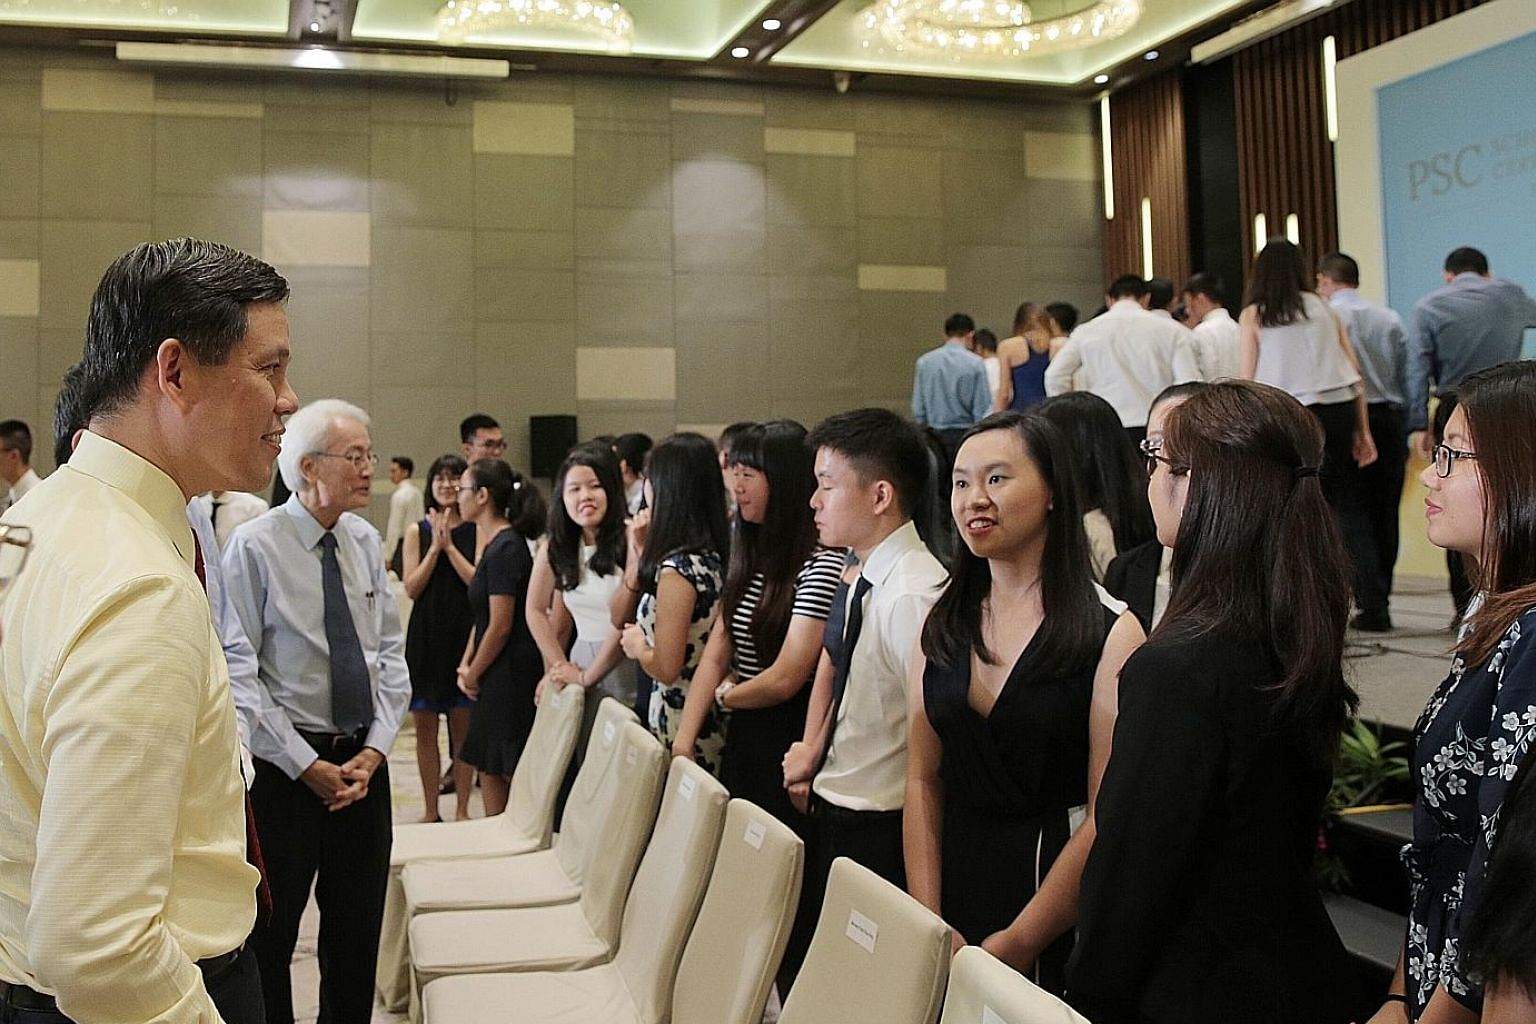 Mr Chan Chun Sing, who is Minister-in-charge of the Public Service, chatting with scholarship recipients at yesterday's Public Service Commission Scholarships Award Ceremony at Parkroyal on Beach Road hotel.